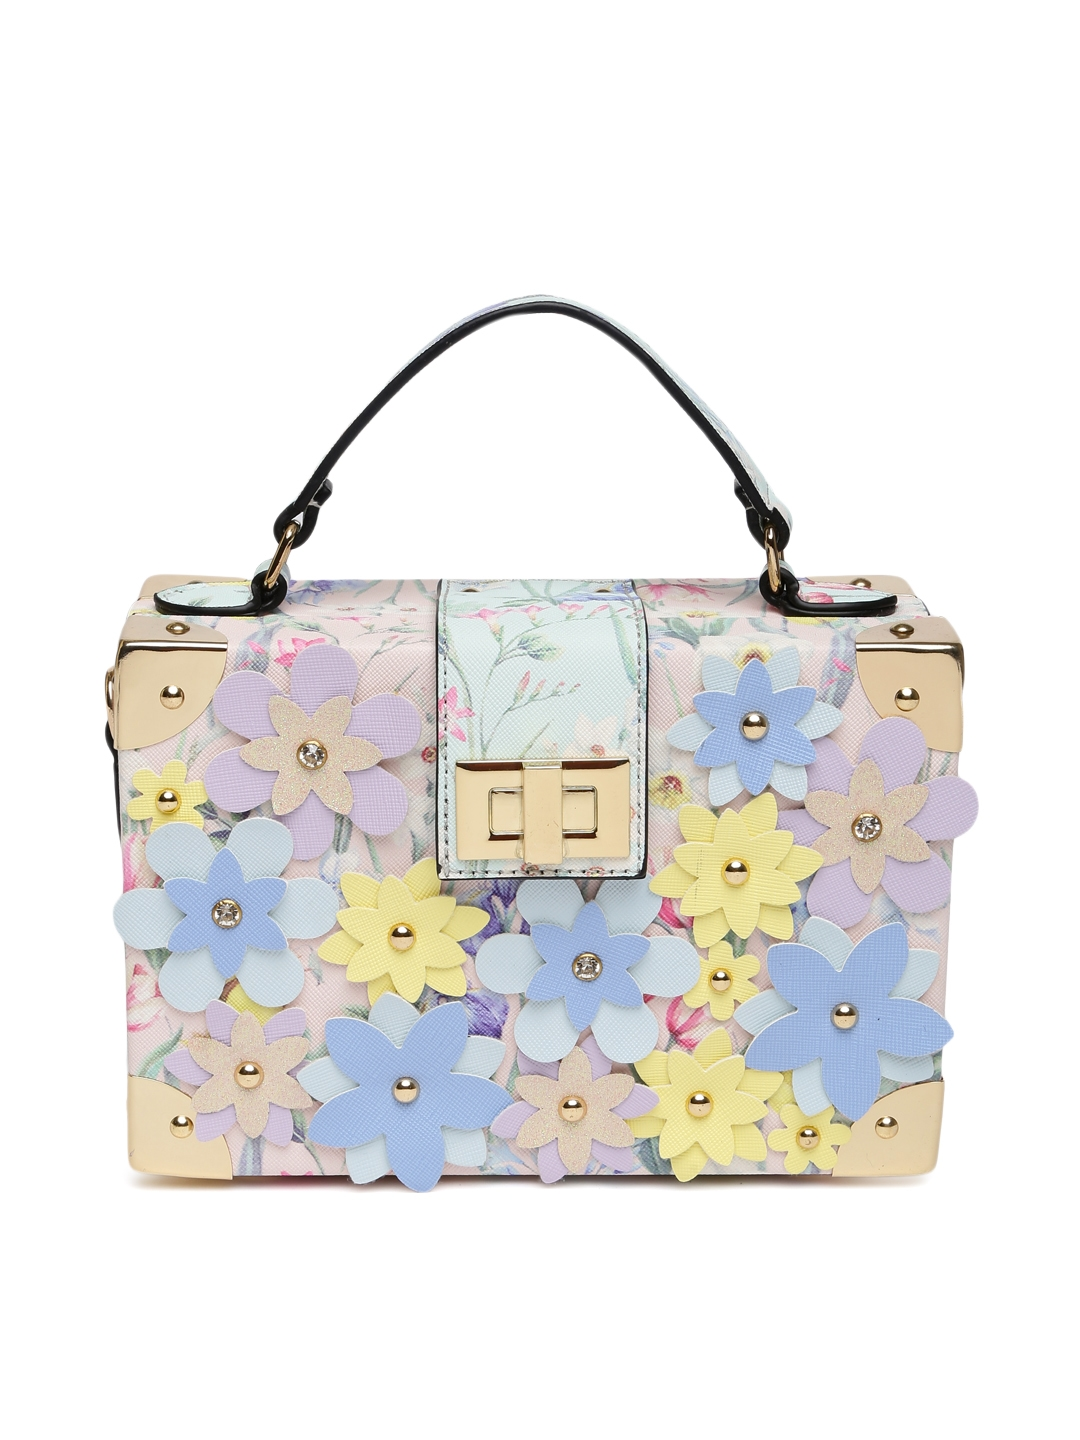 82de7202b6d Buy ALDO Multicoloured Embellished CAMPOLANO Box Clutch - Clutches ...